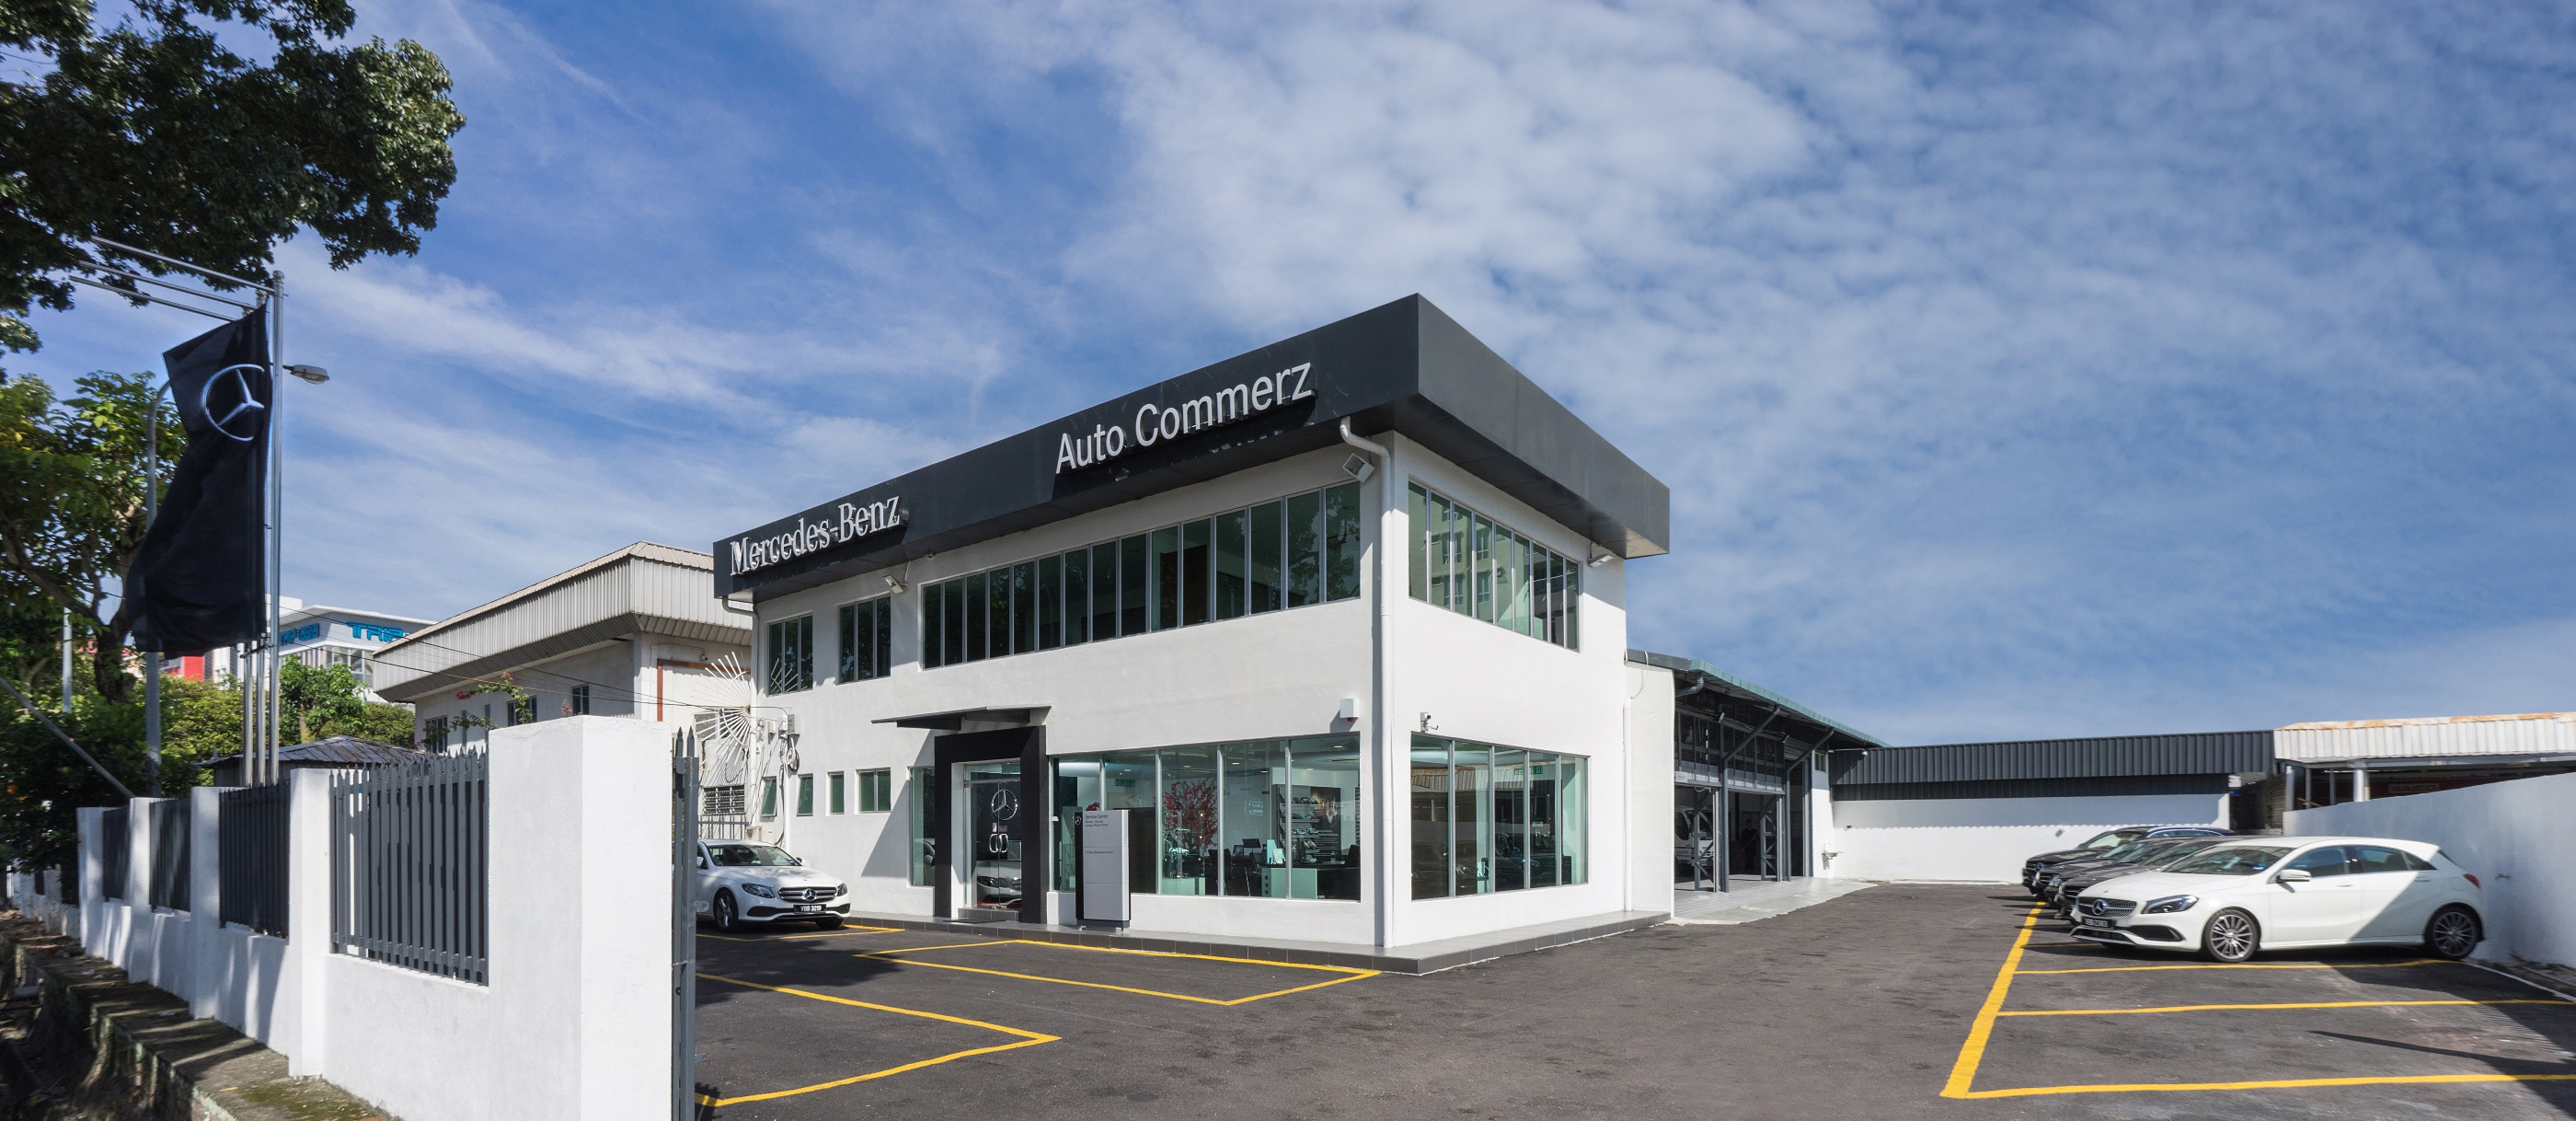 Mercedes benz malaysia and auto commerz launch brand new for Mercedes benz rockville centre service